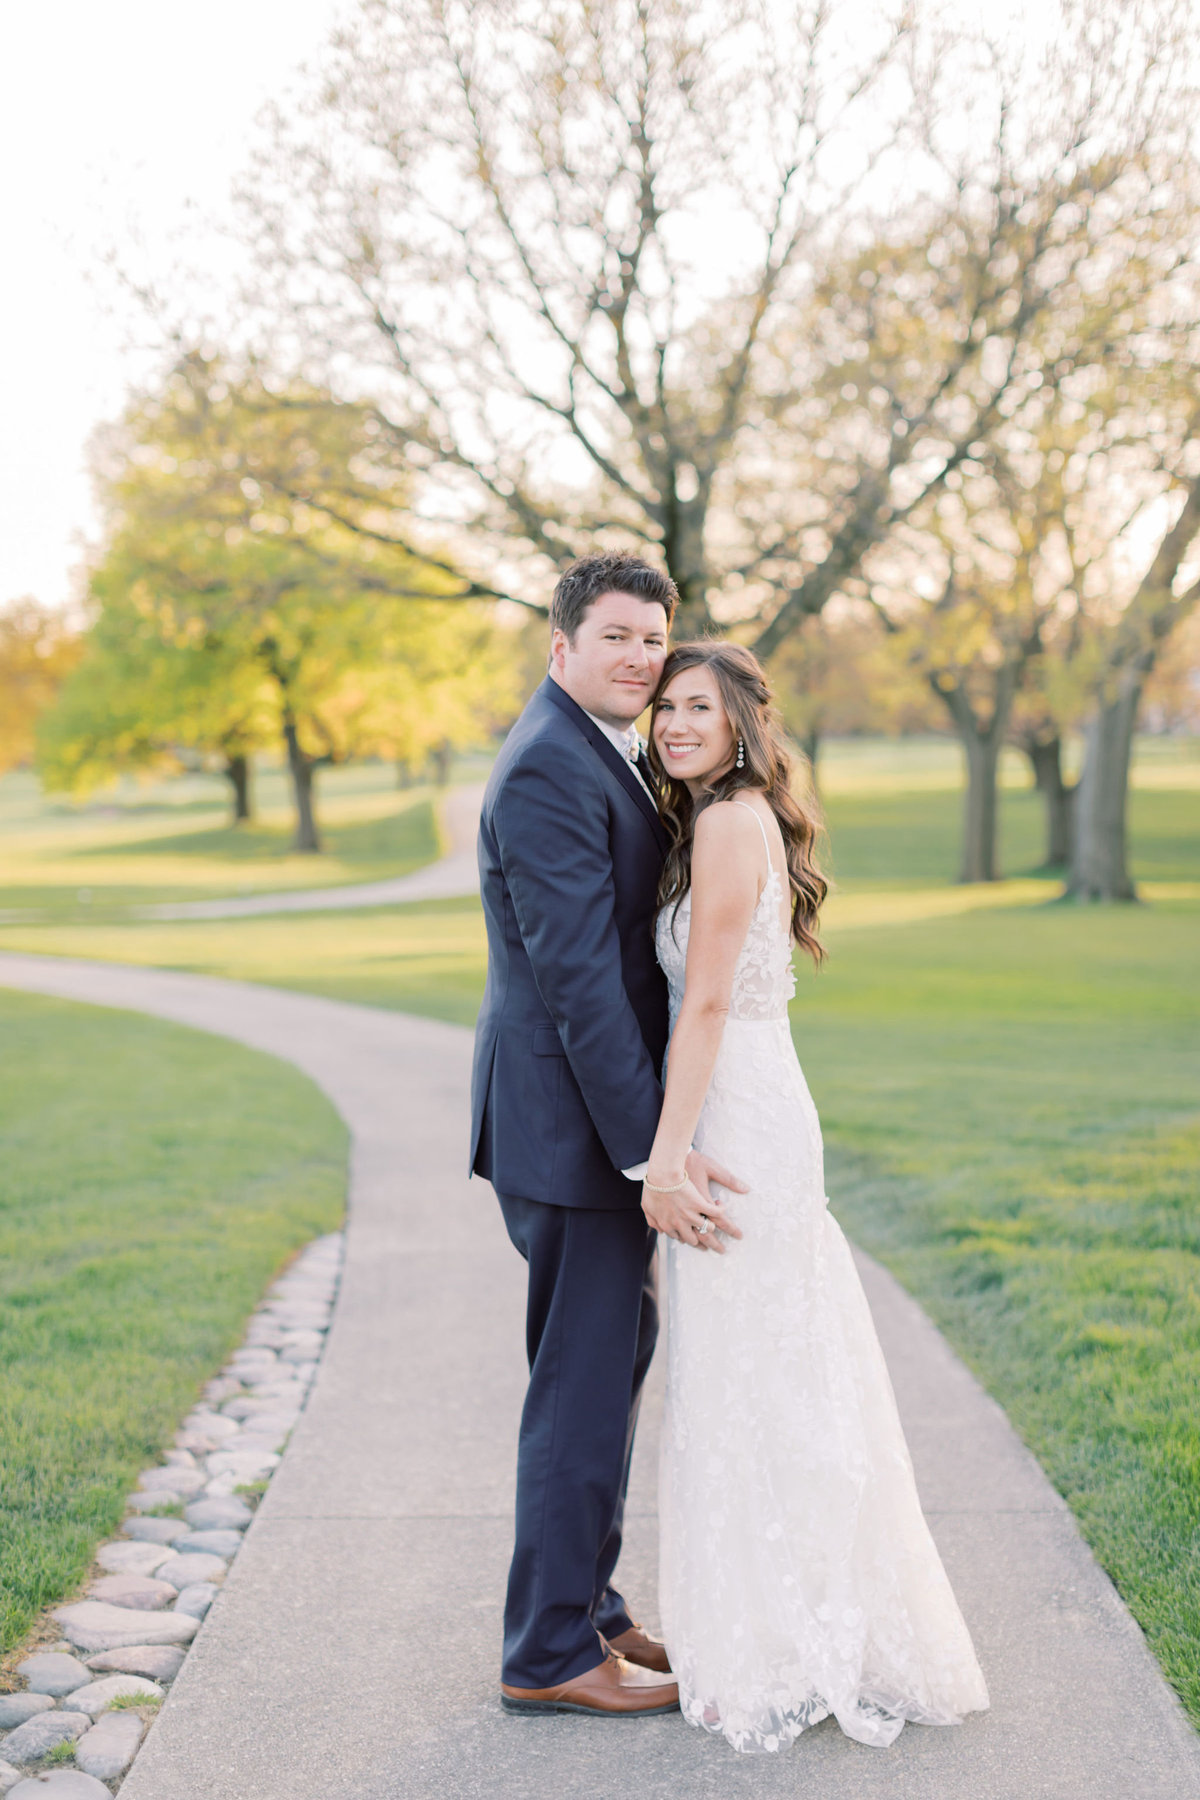 TiffaneyChildsPhotography-ChicagoWeddingPhotographer-Chloe+Jon-HinsdaleCountryClubWedding-BridalPortraits-100